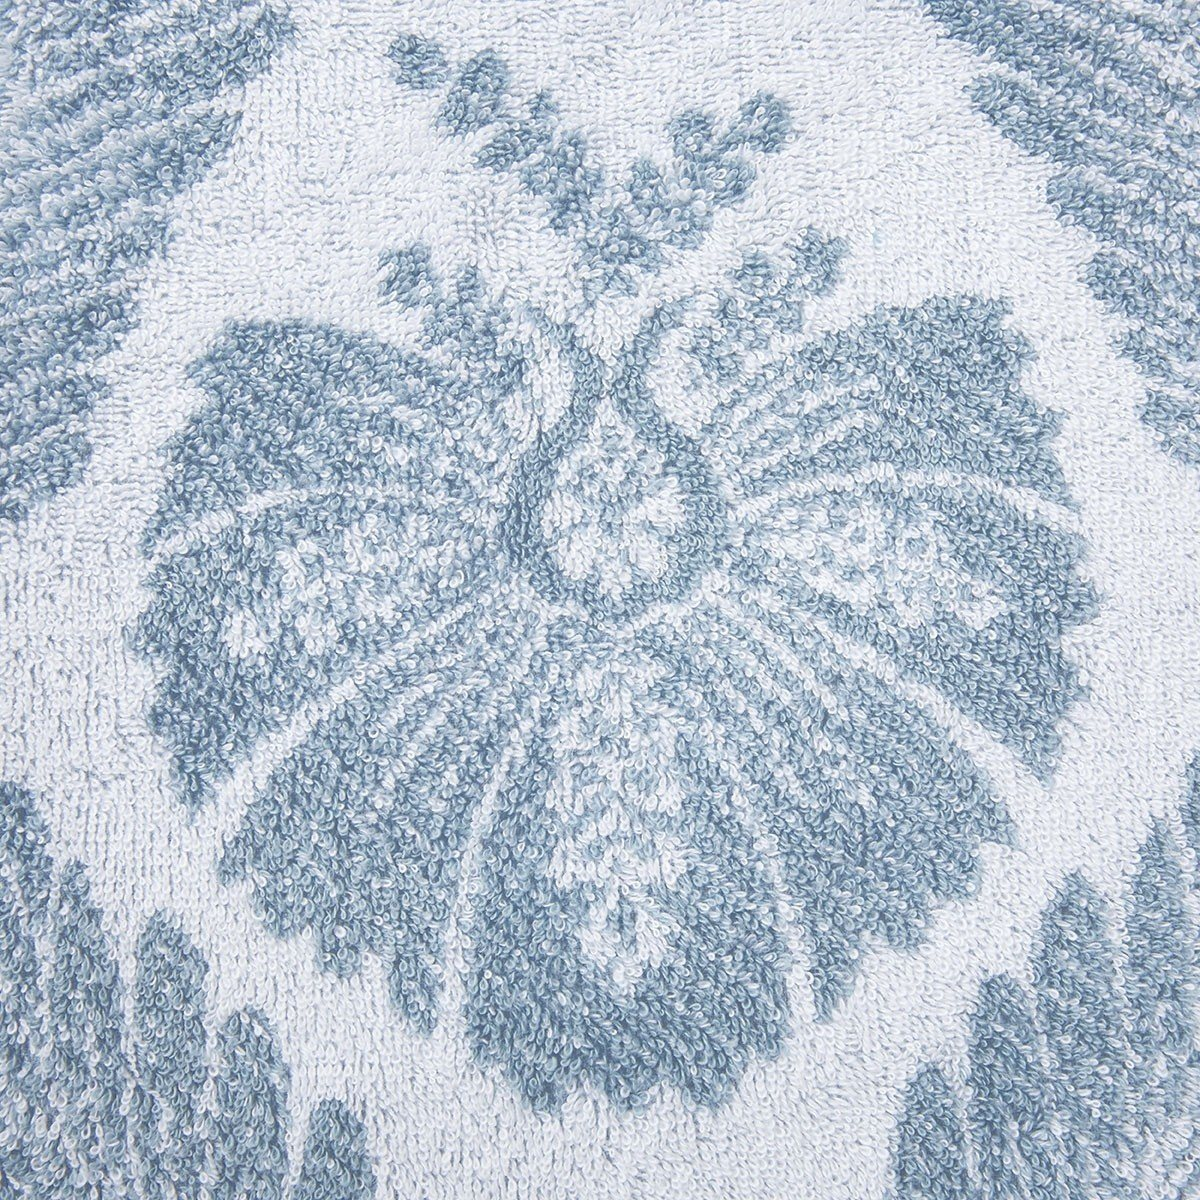 Yves Delorme Palmes Bath Towel Collection | Fig Linens, Blue bath, guest towel - floral, back